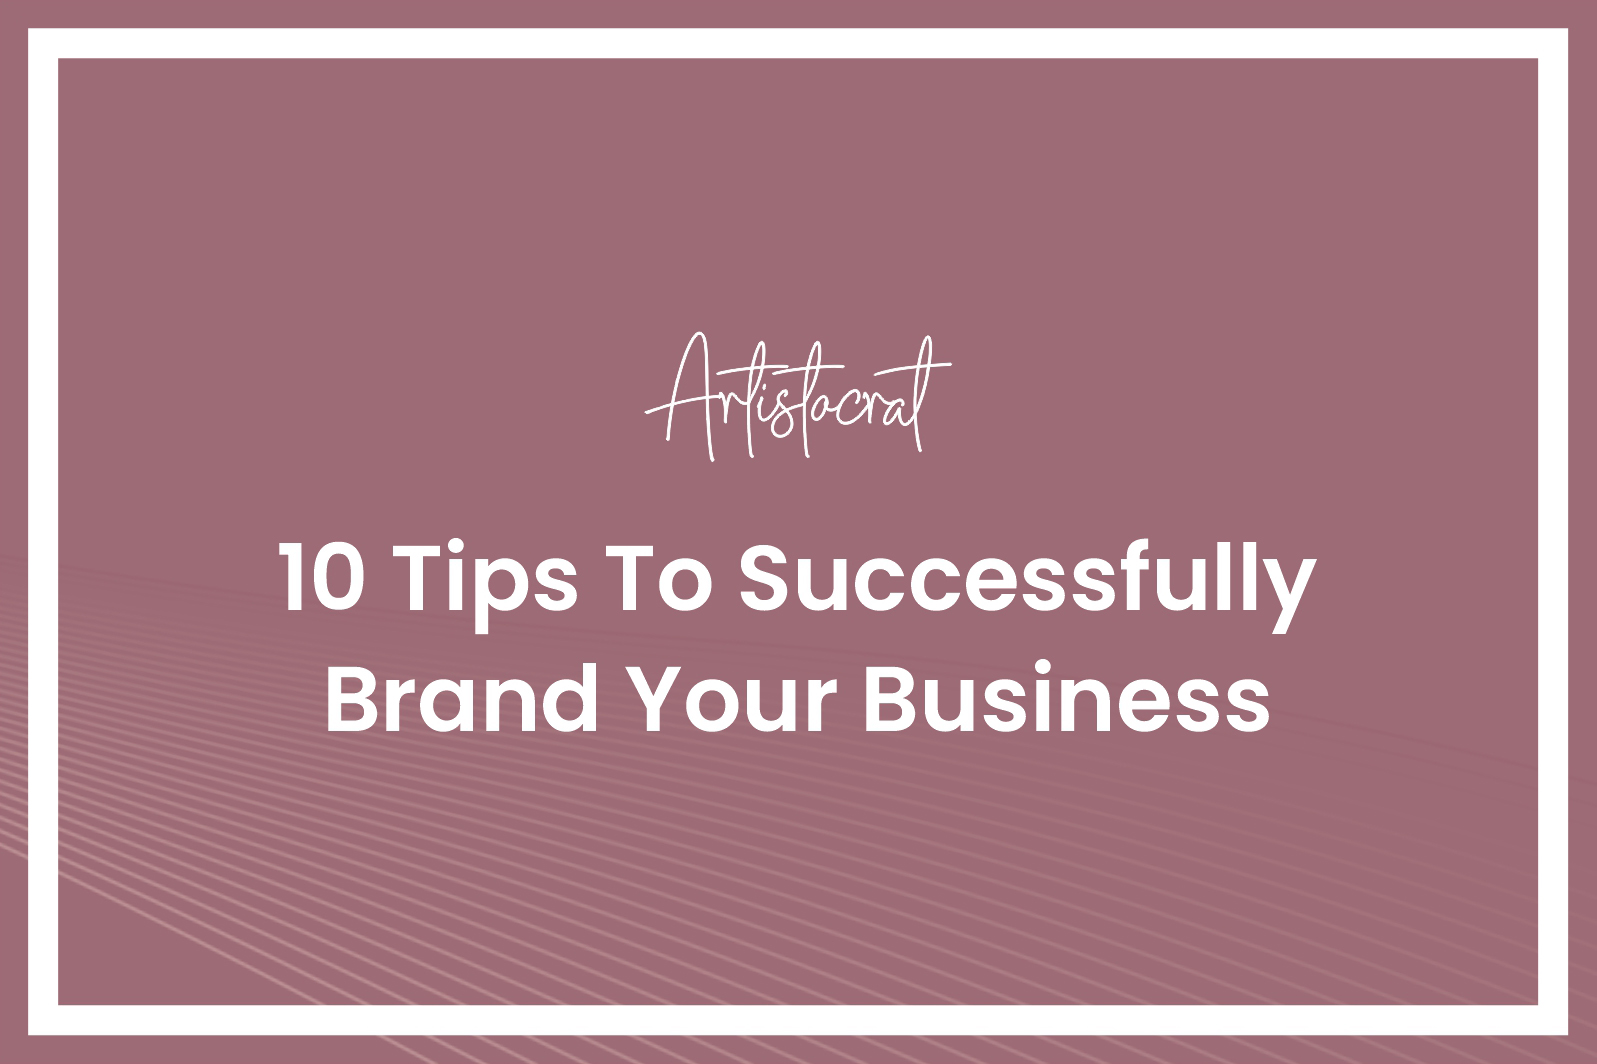 10-Tips-Successfully-Brand-Your-Business